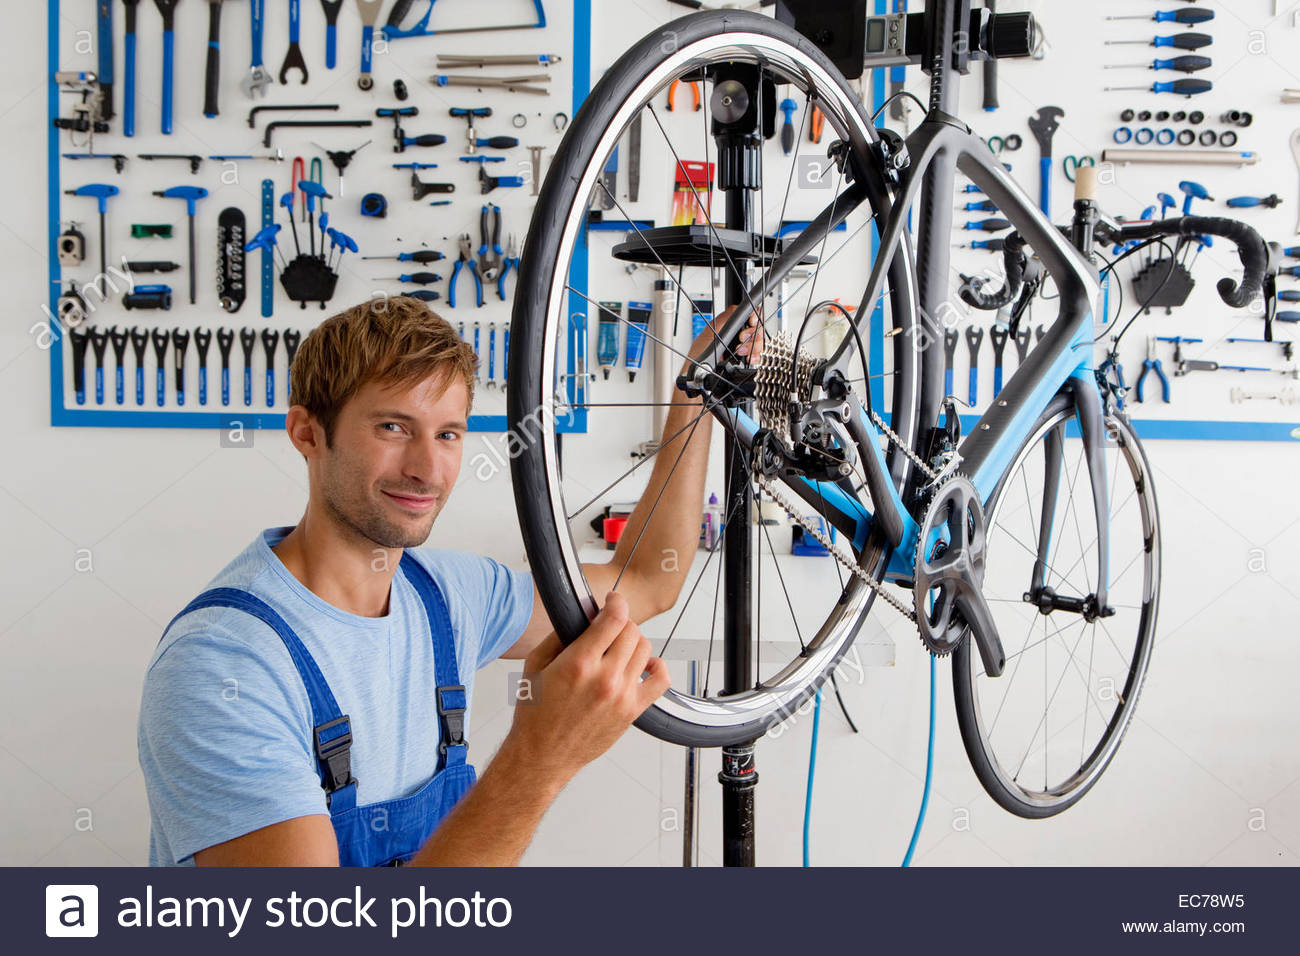 Cycle technician looking at camera in workshop - Stock Image